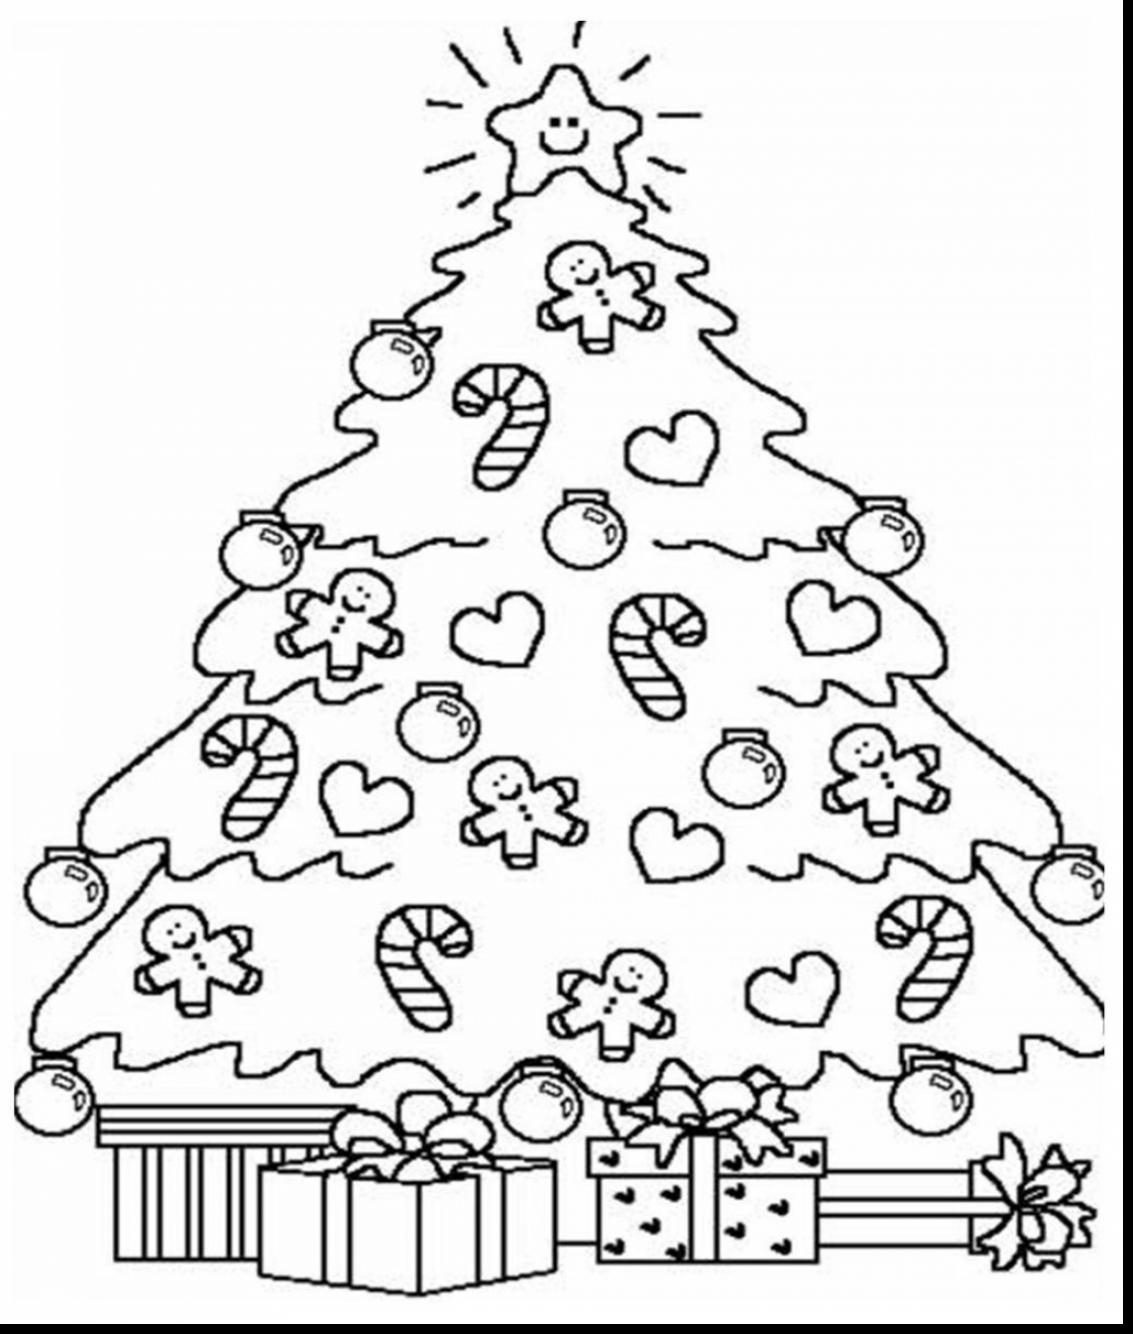 Tree Coloring Pages Collection | Free Coloring Sheets